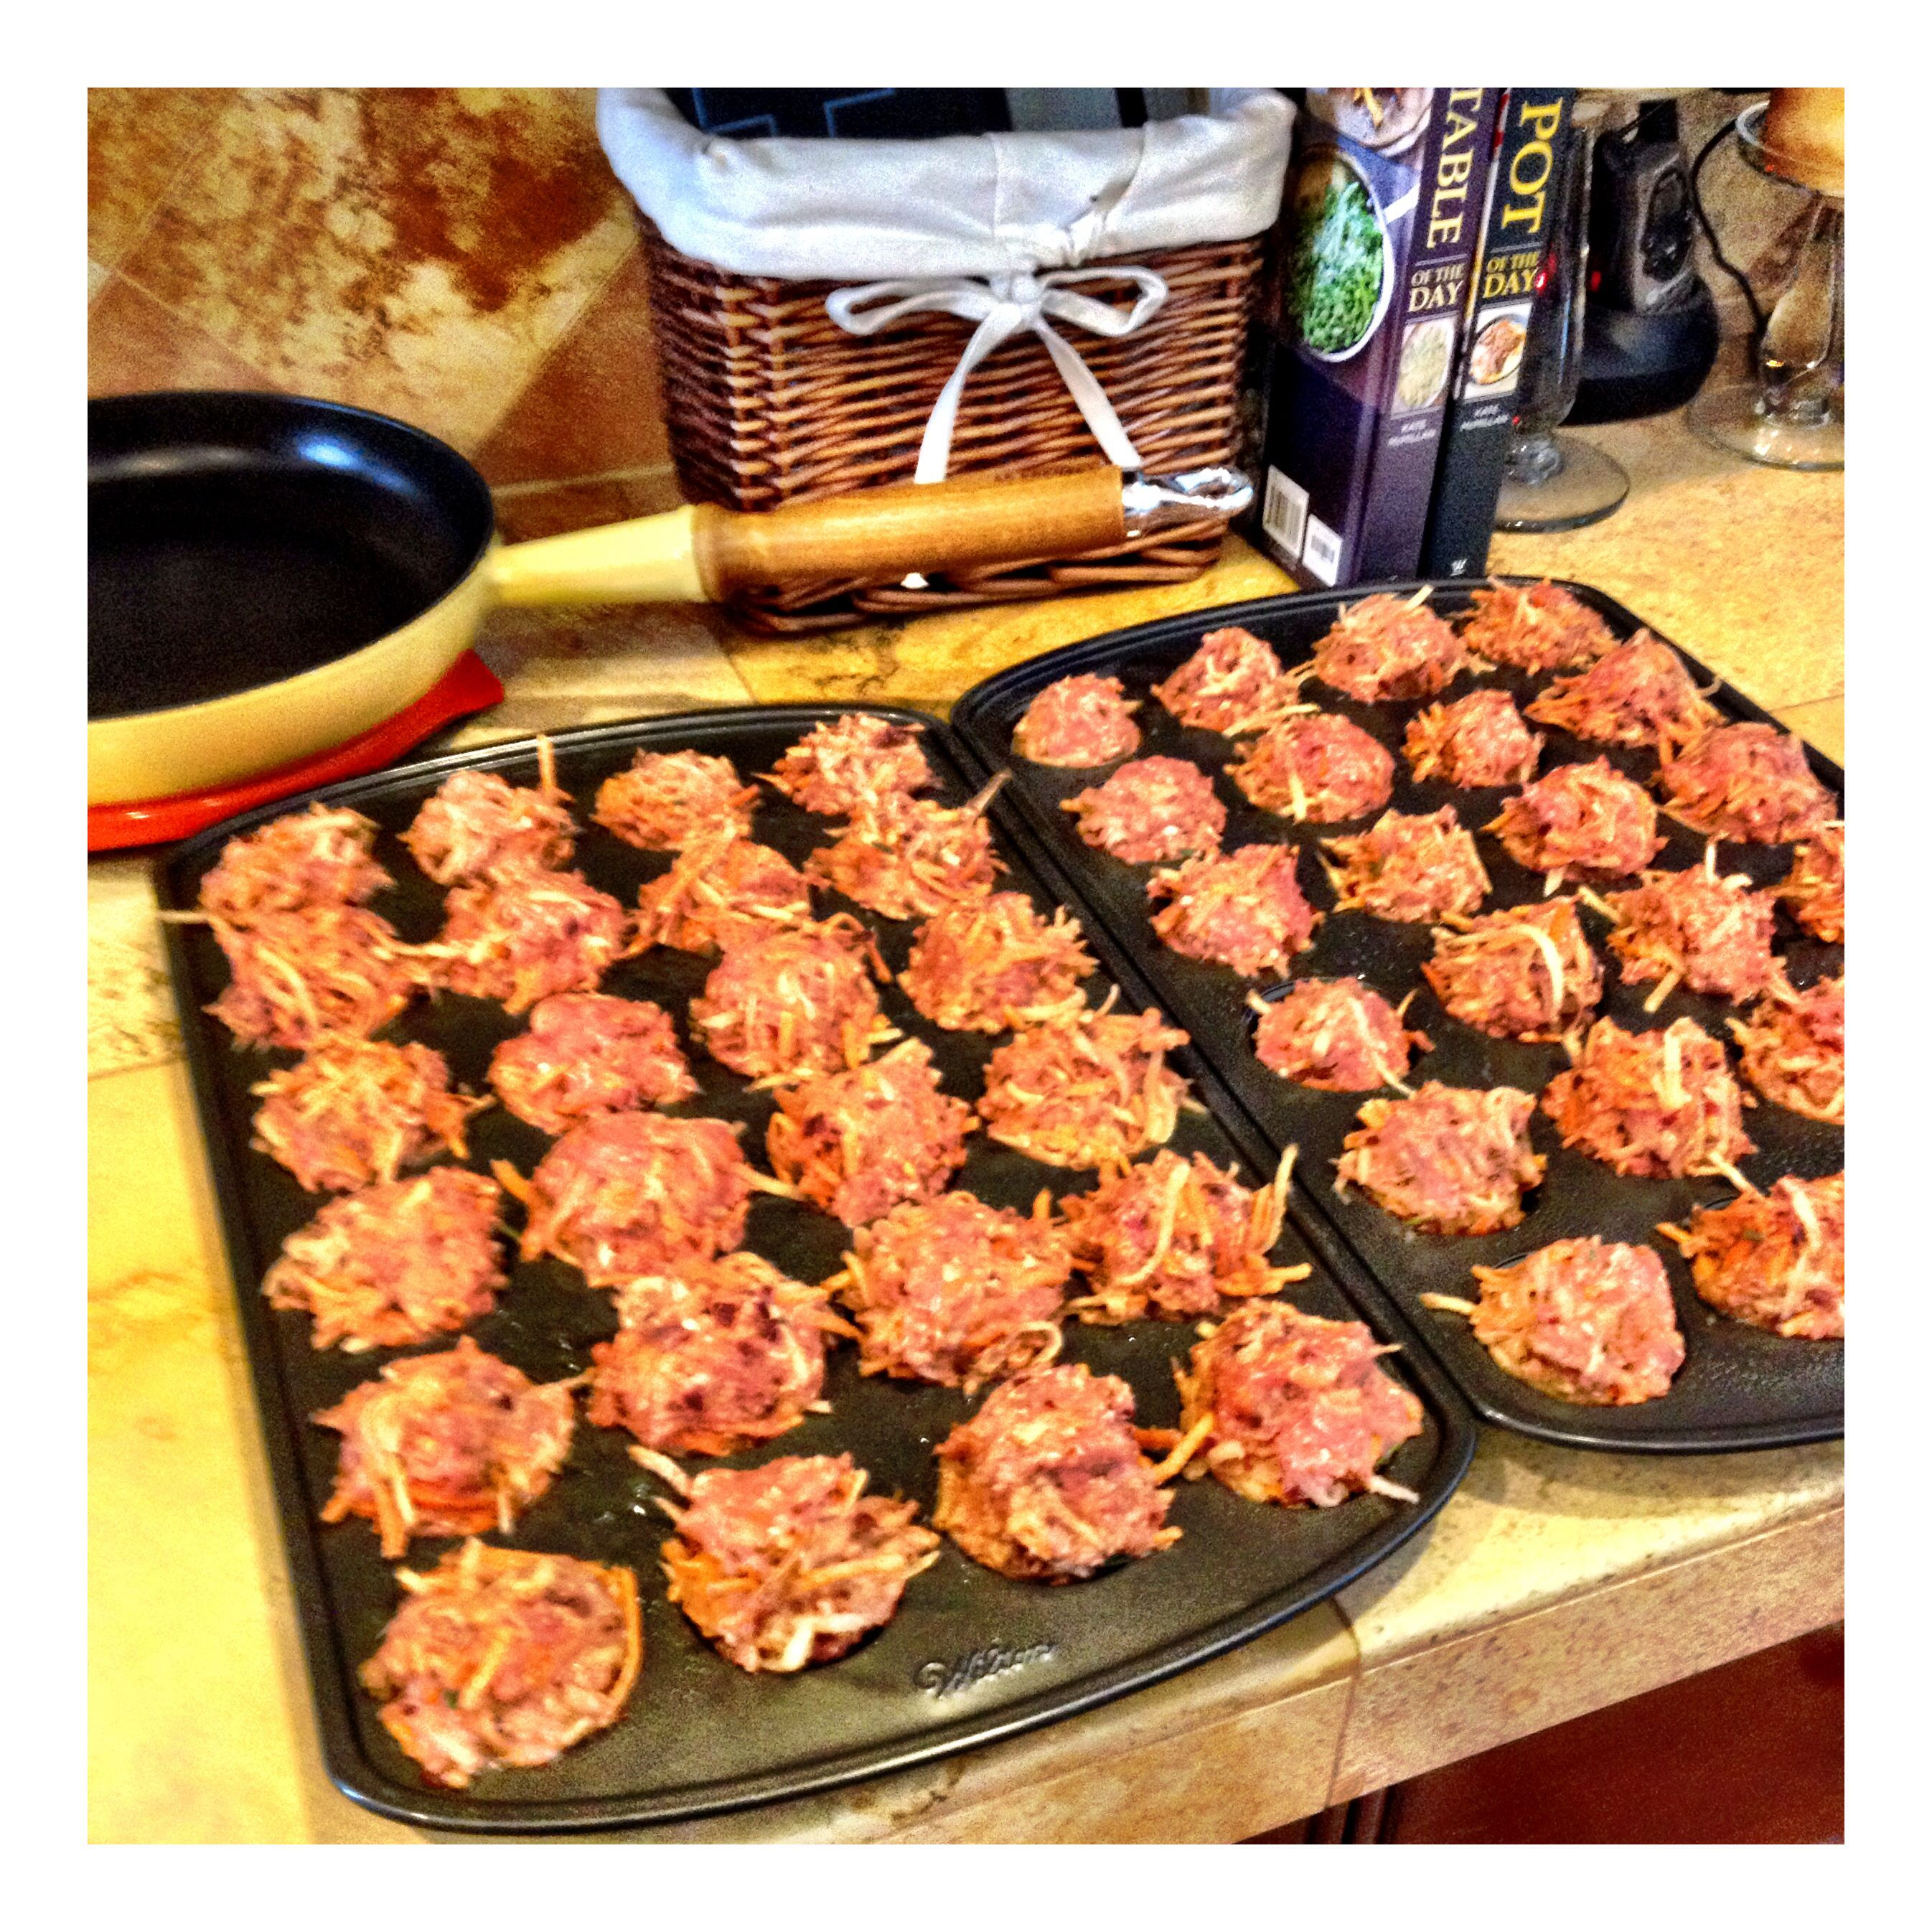 Yorkie meat muffins. All natural Homemade dog food. I feed